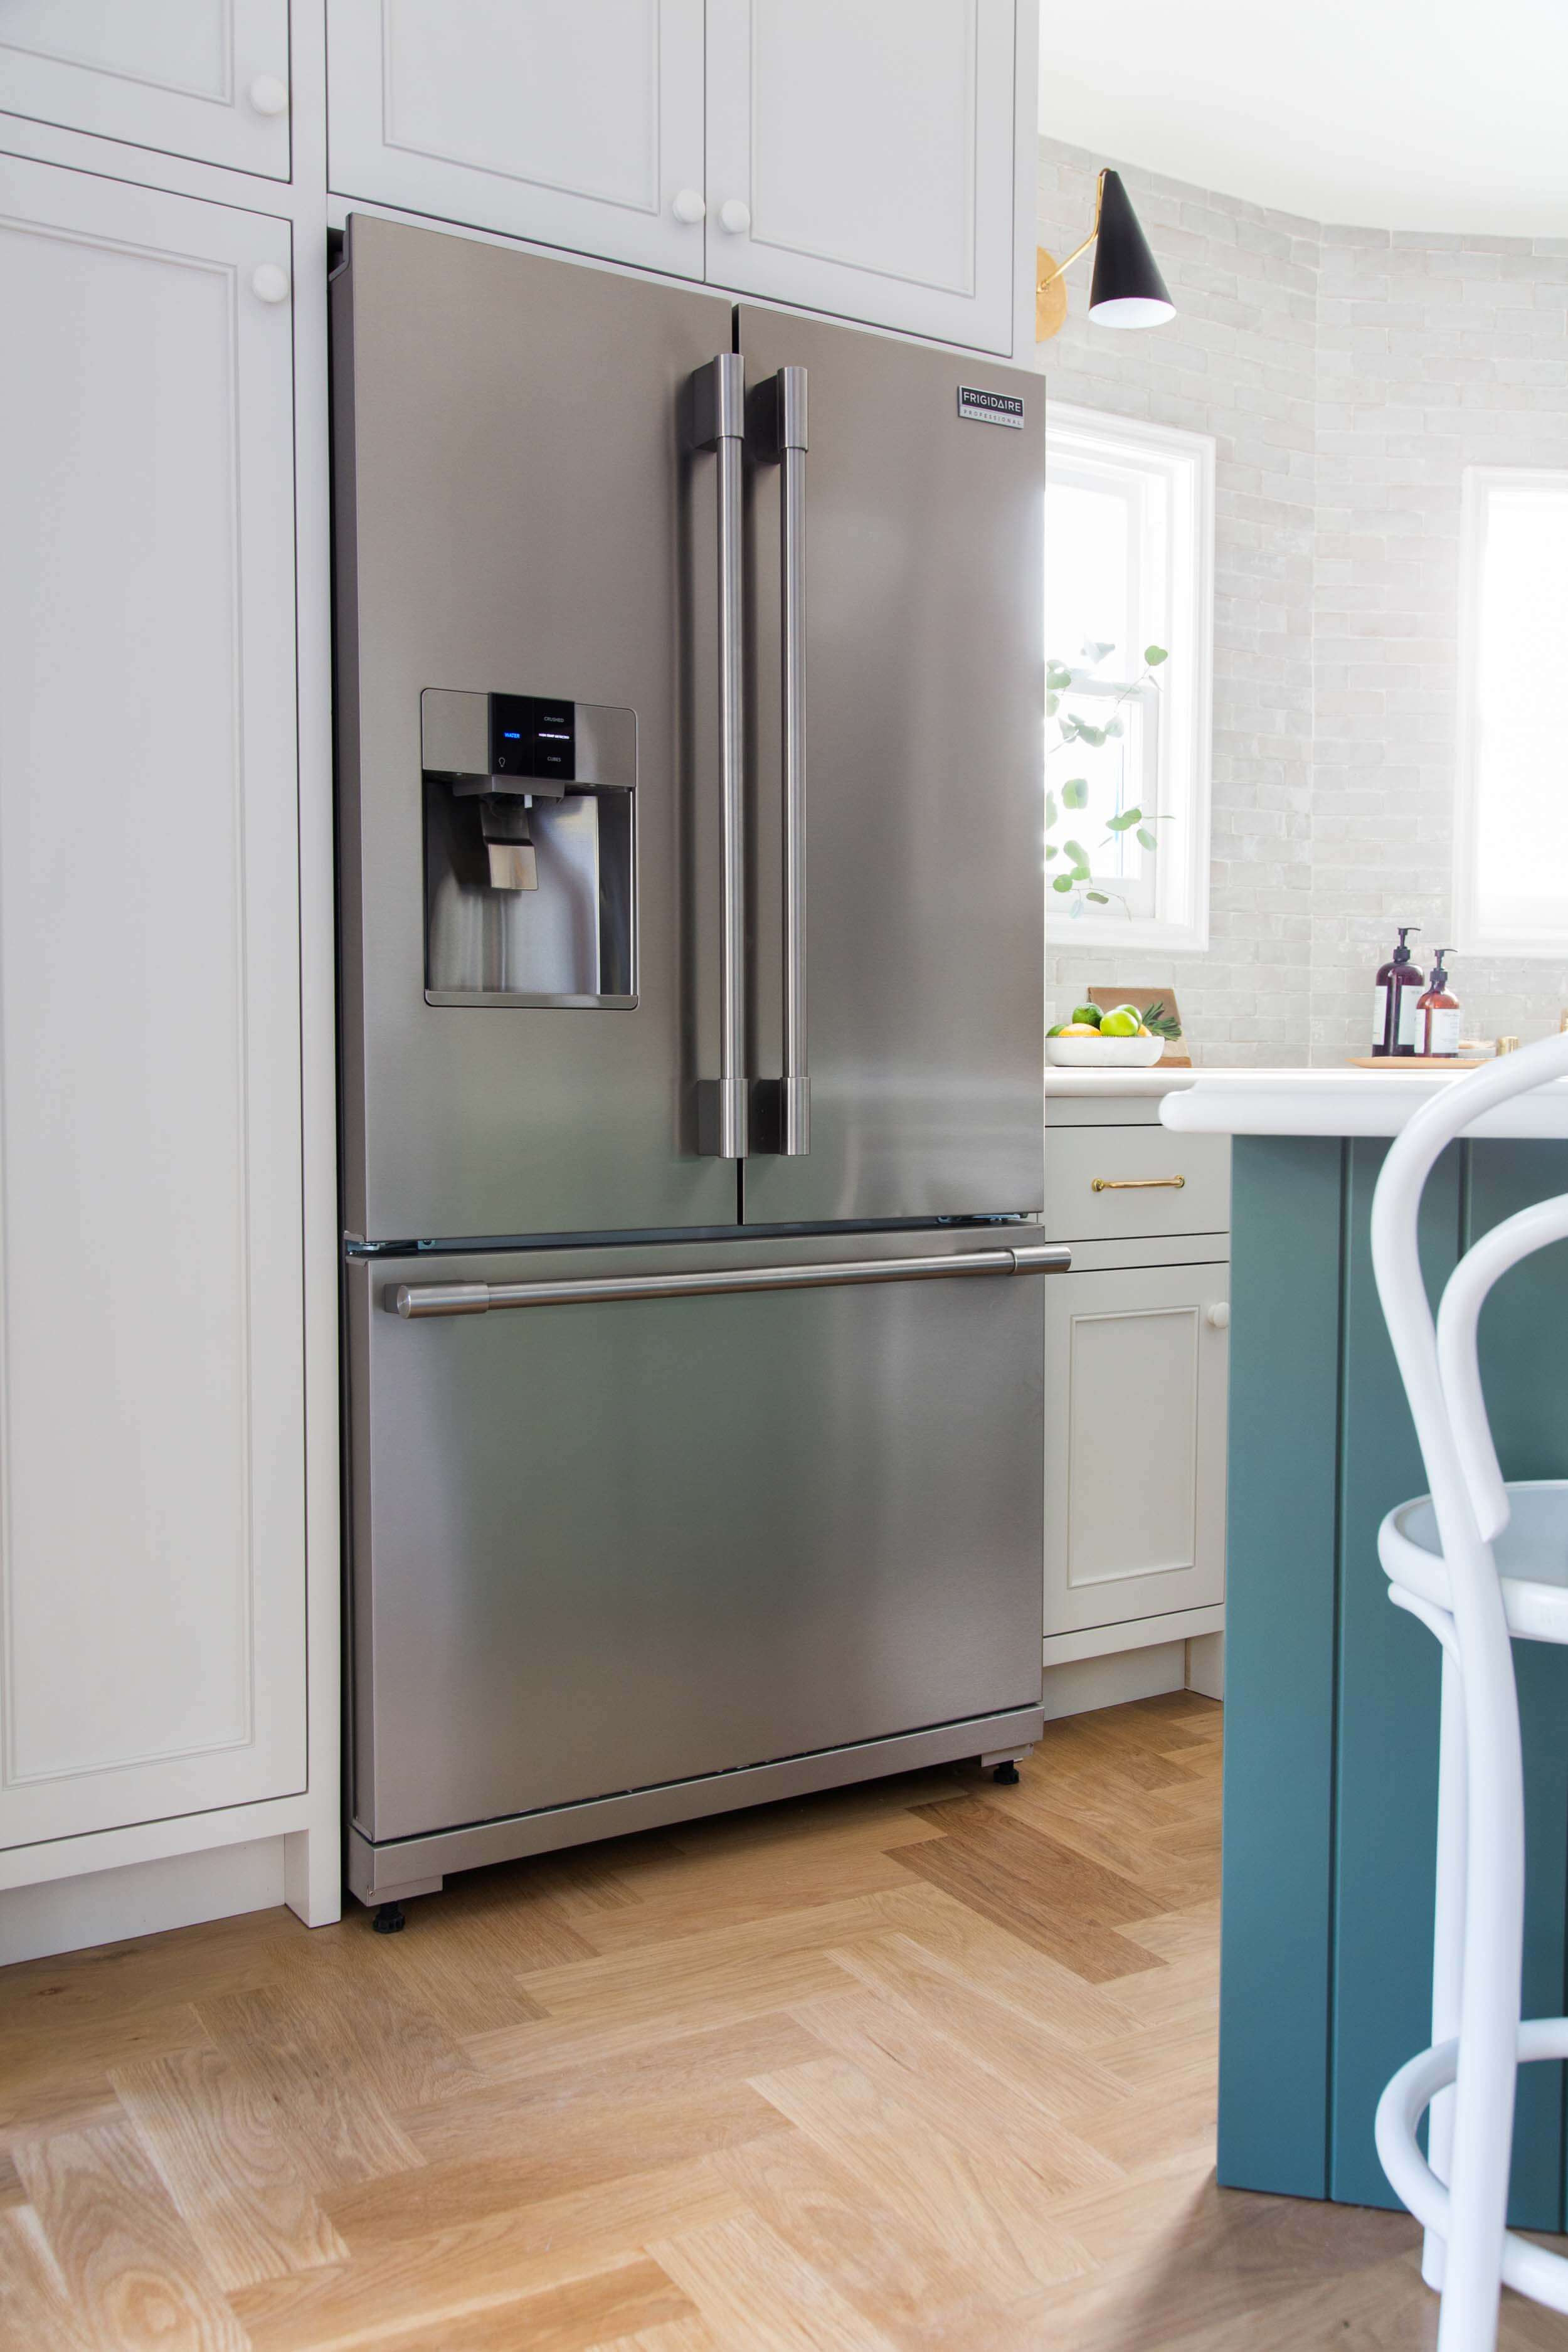 dm hardwood floors of my kitchen design a year later lots to love some regrets emily with emily henderson full kitchen reveal waverly frigidaire 201